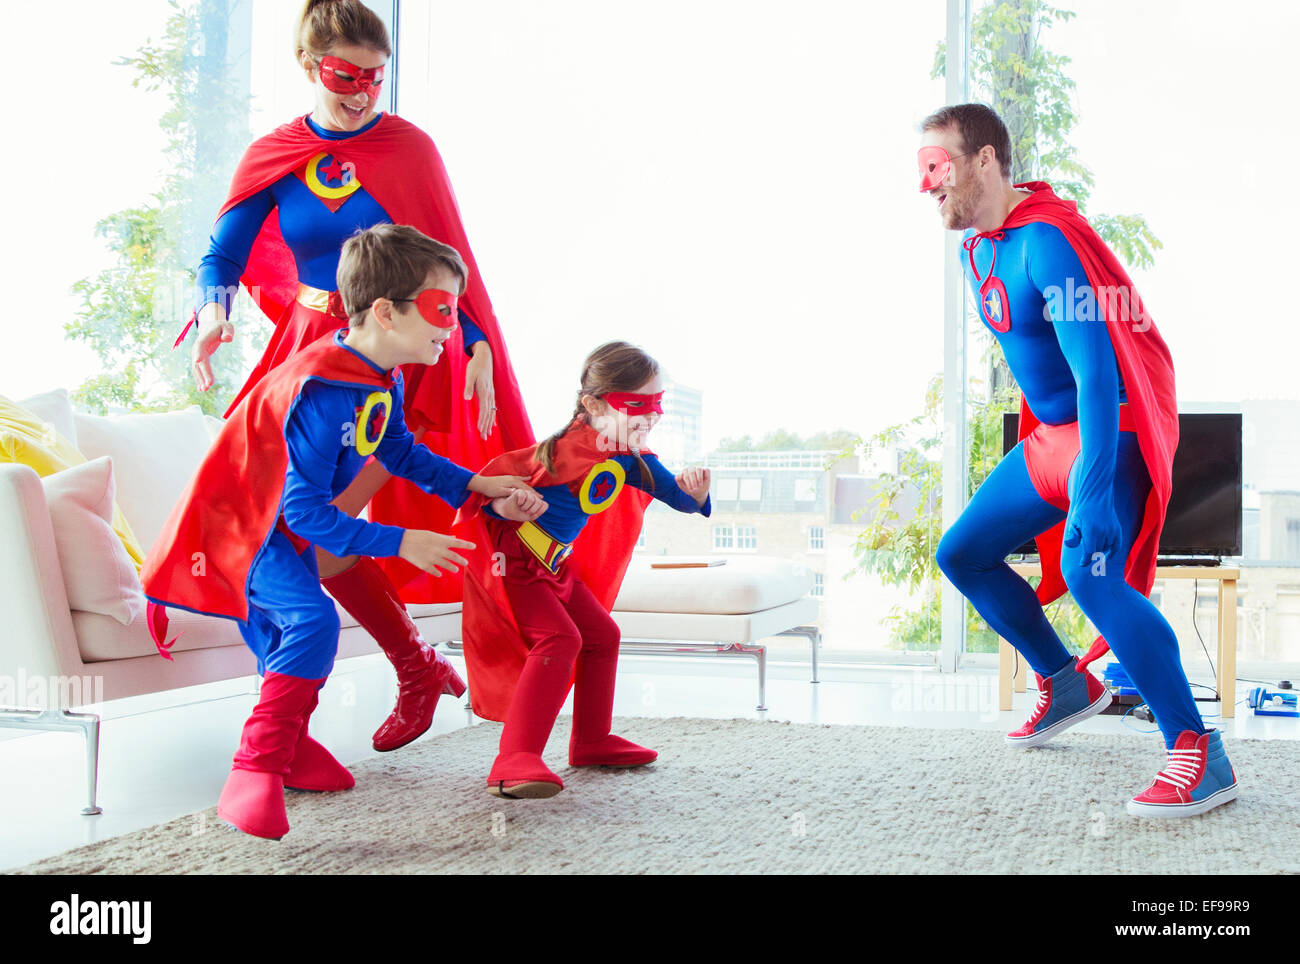 Superhero family chasing each other in living room - Stock Image